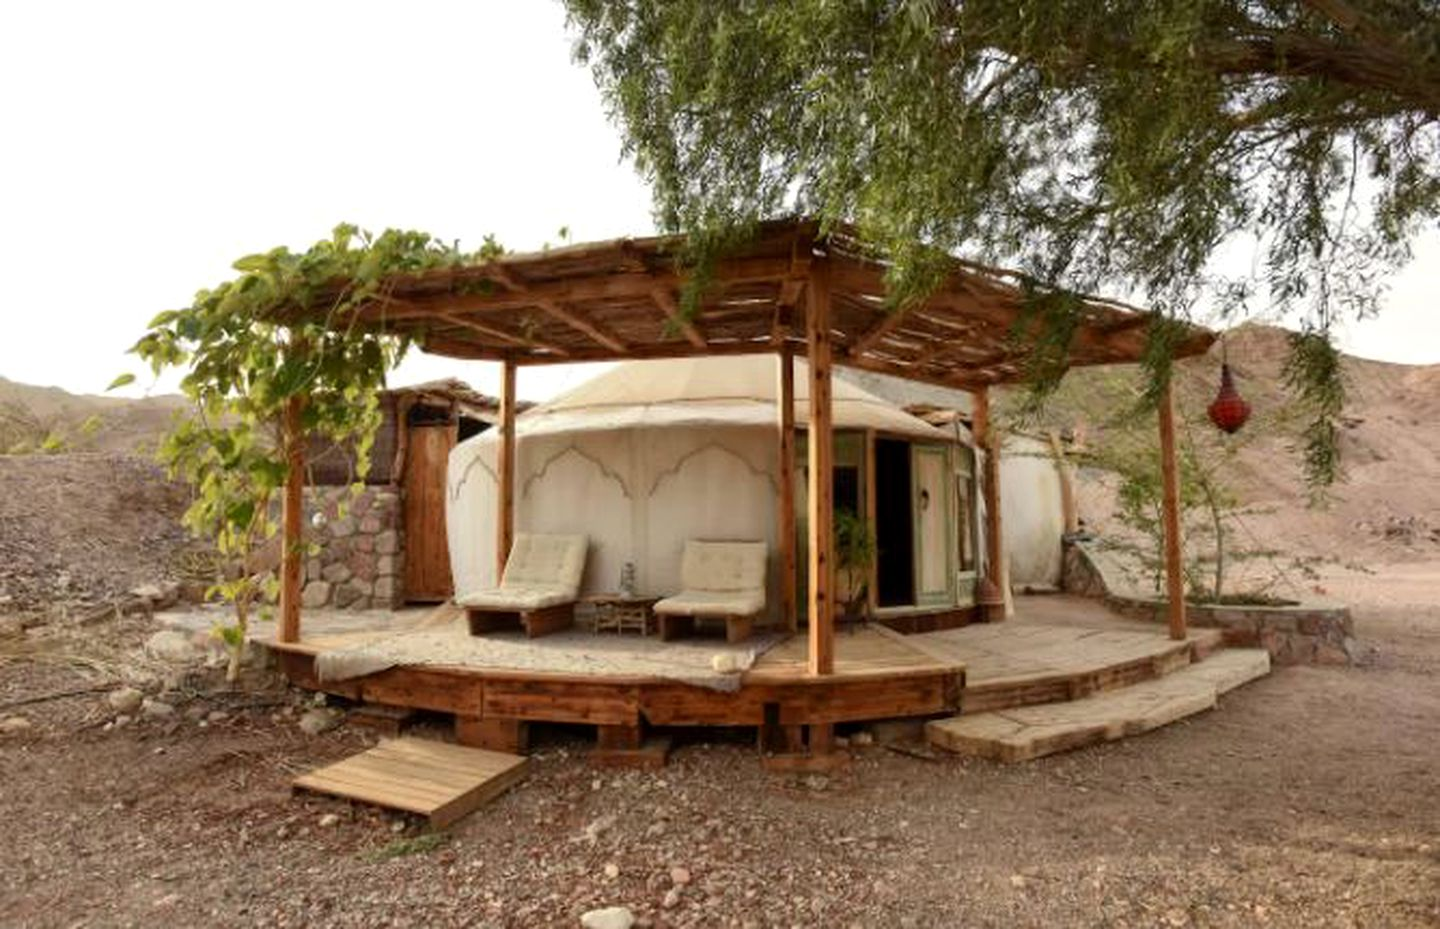 Yurt camping for holiday in Eilat, Israel.